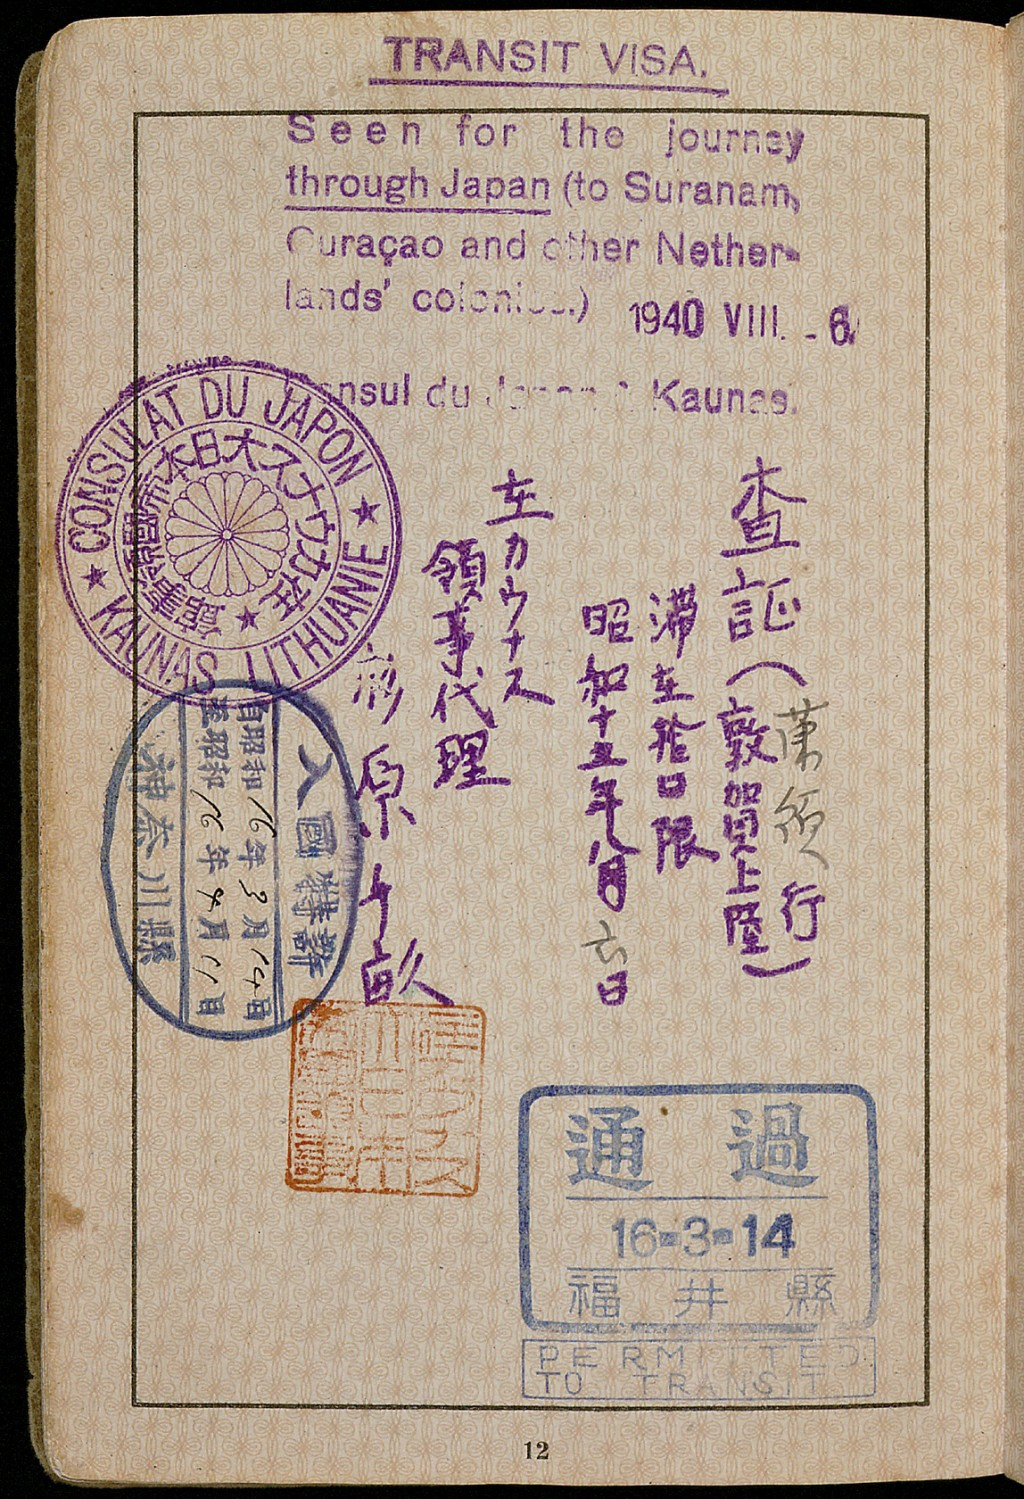 <p>Transit visa in a passport issued to Setty Sondheimer, a German citizen. This visa, issued on August 6, 1940, enabled her to travel through Japan en route to Surinam, Curacao, or other Dutch colonies in the Americas. These plans were disrupted when travel across the Pacific Ocean was forbidden following U.S. entry into World War II. Setty remained in Japan until she was able to emigrate to the United States in 1947. [From the USHMM special exhibition Flight and Rescue.]</p>